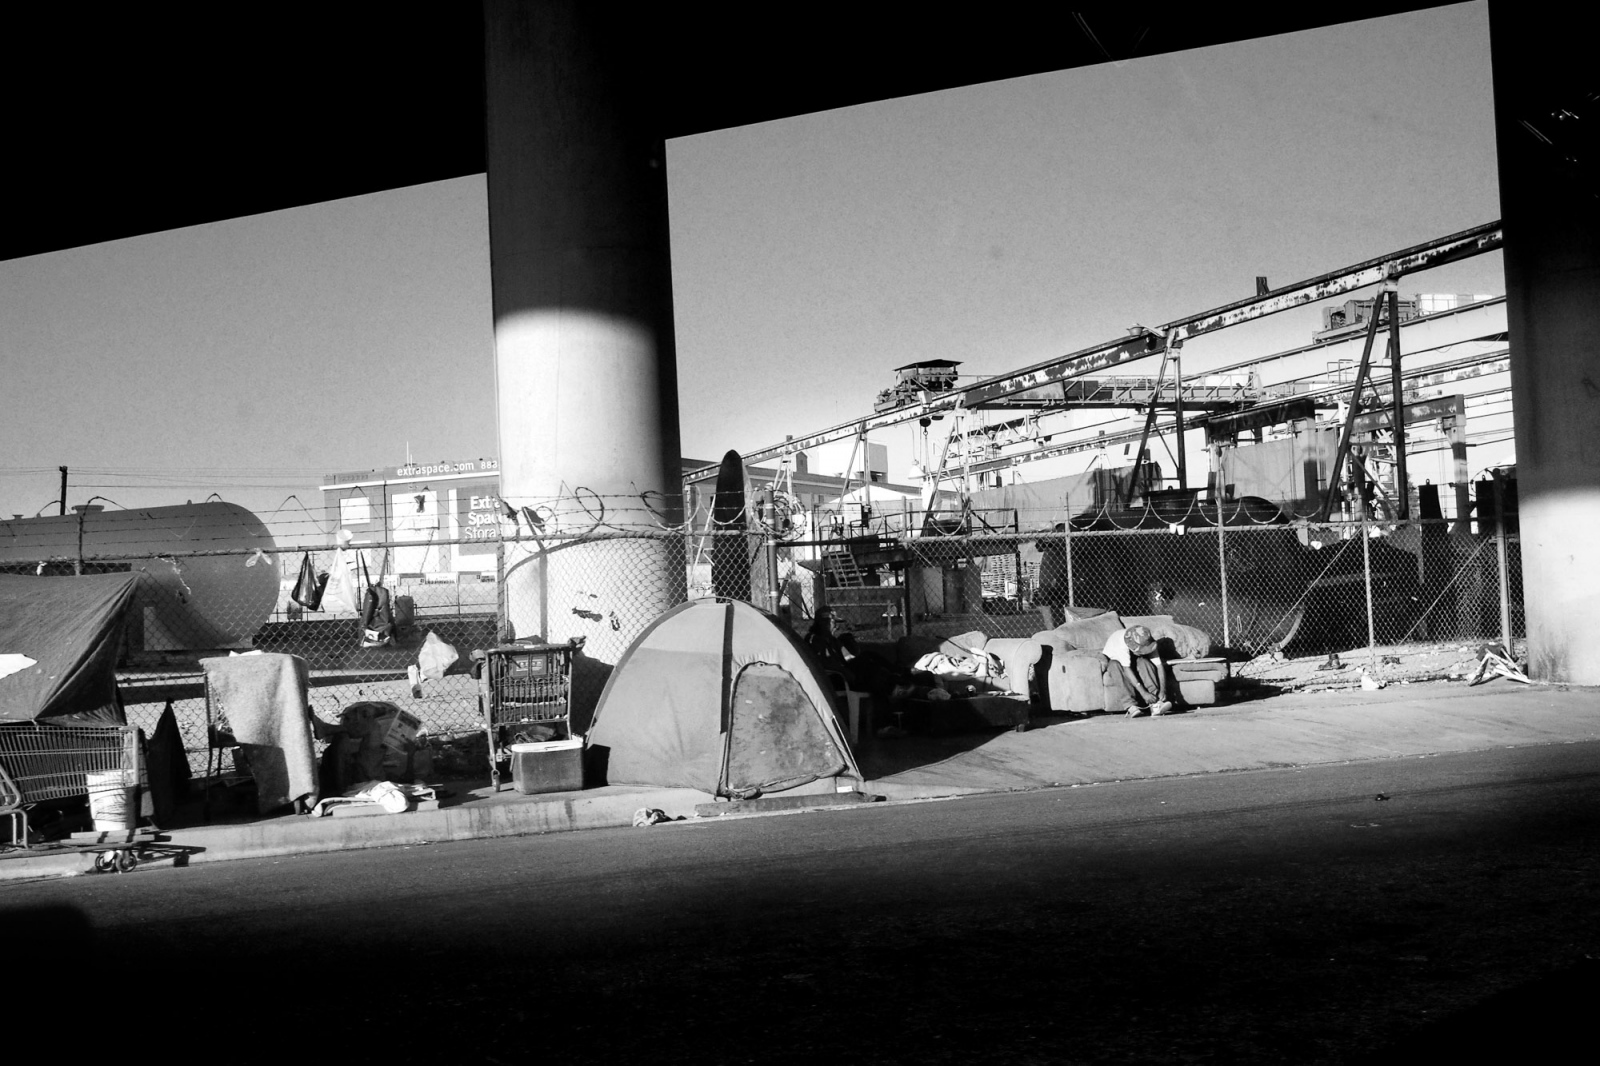 Fresno, California, 2013 In a part of downtown Fresno, the Old city, for years it has been populated by a shanty town of tents and where homeless sleep rough living on the edge of the highway, they crowd around the bridge pilons, any commercial activites have abandoned this area to move to the northern part of the city.